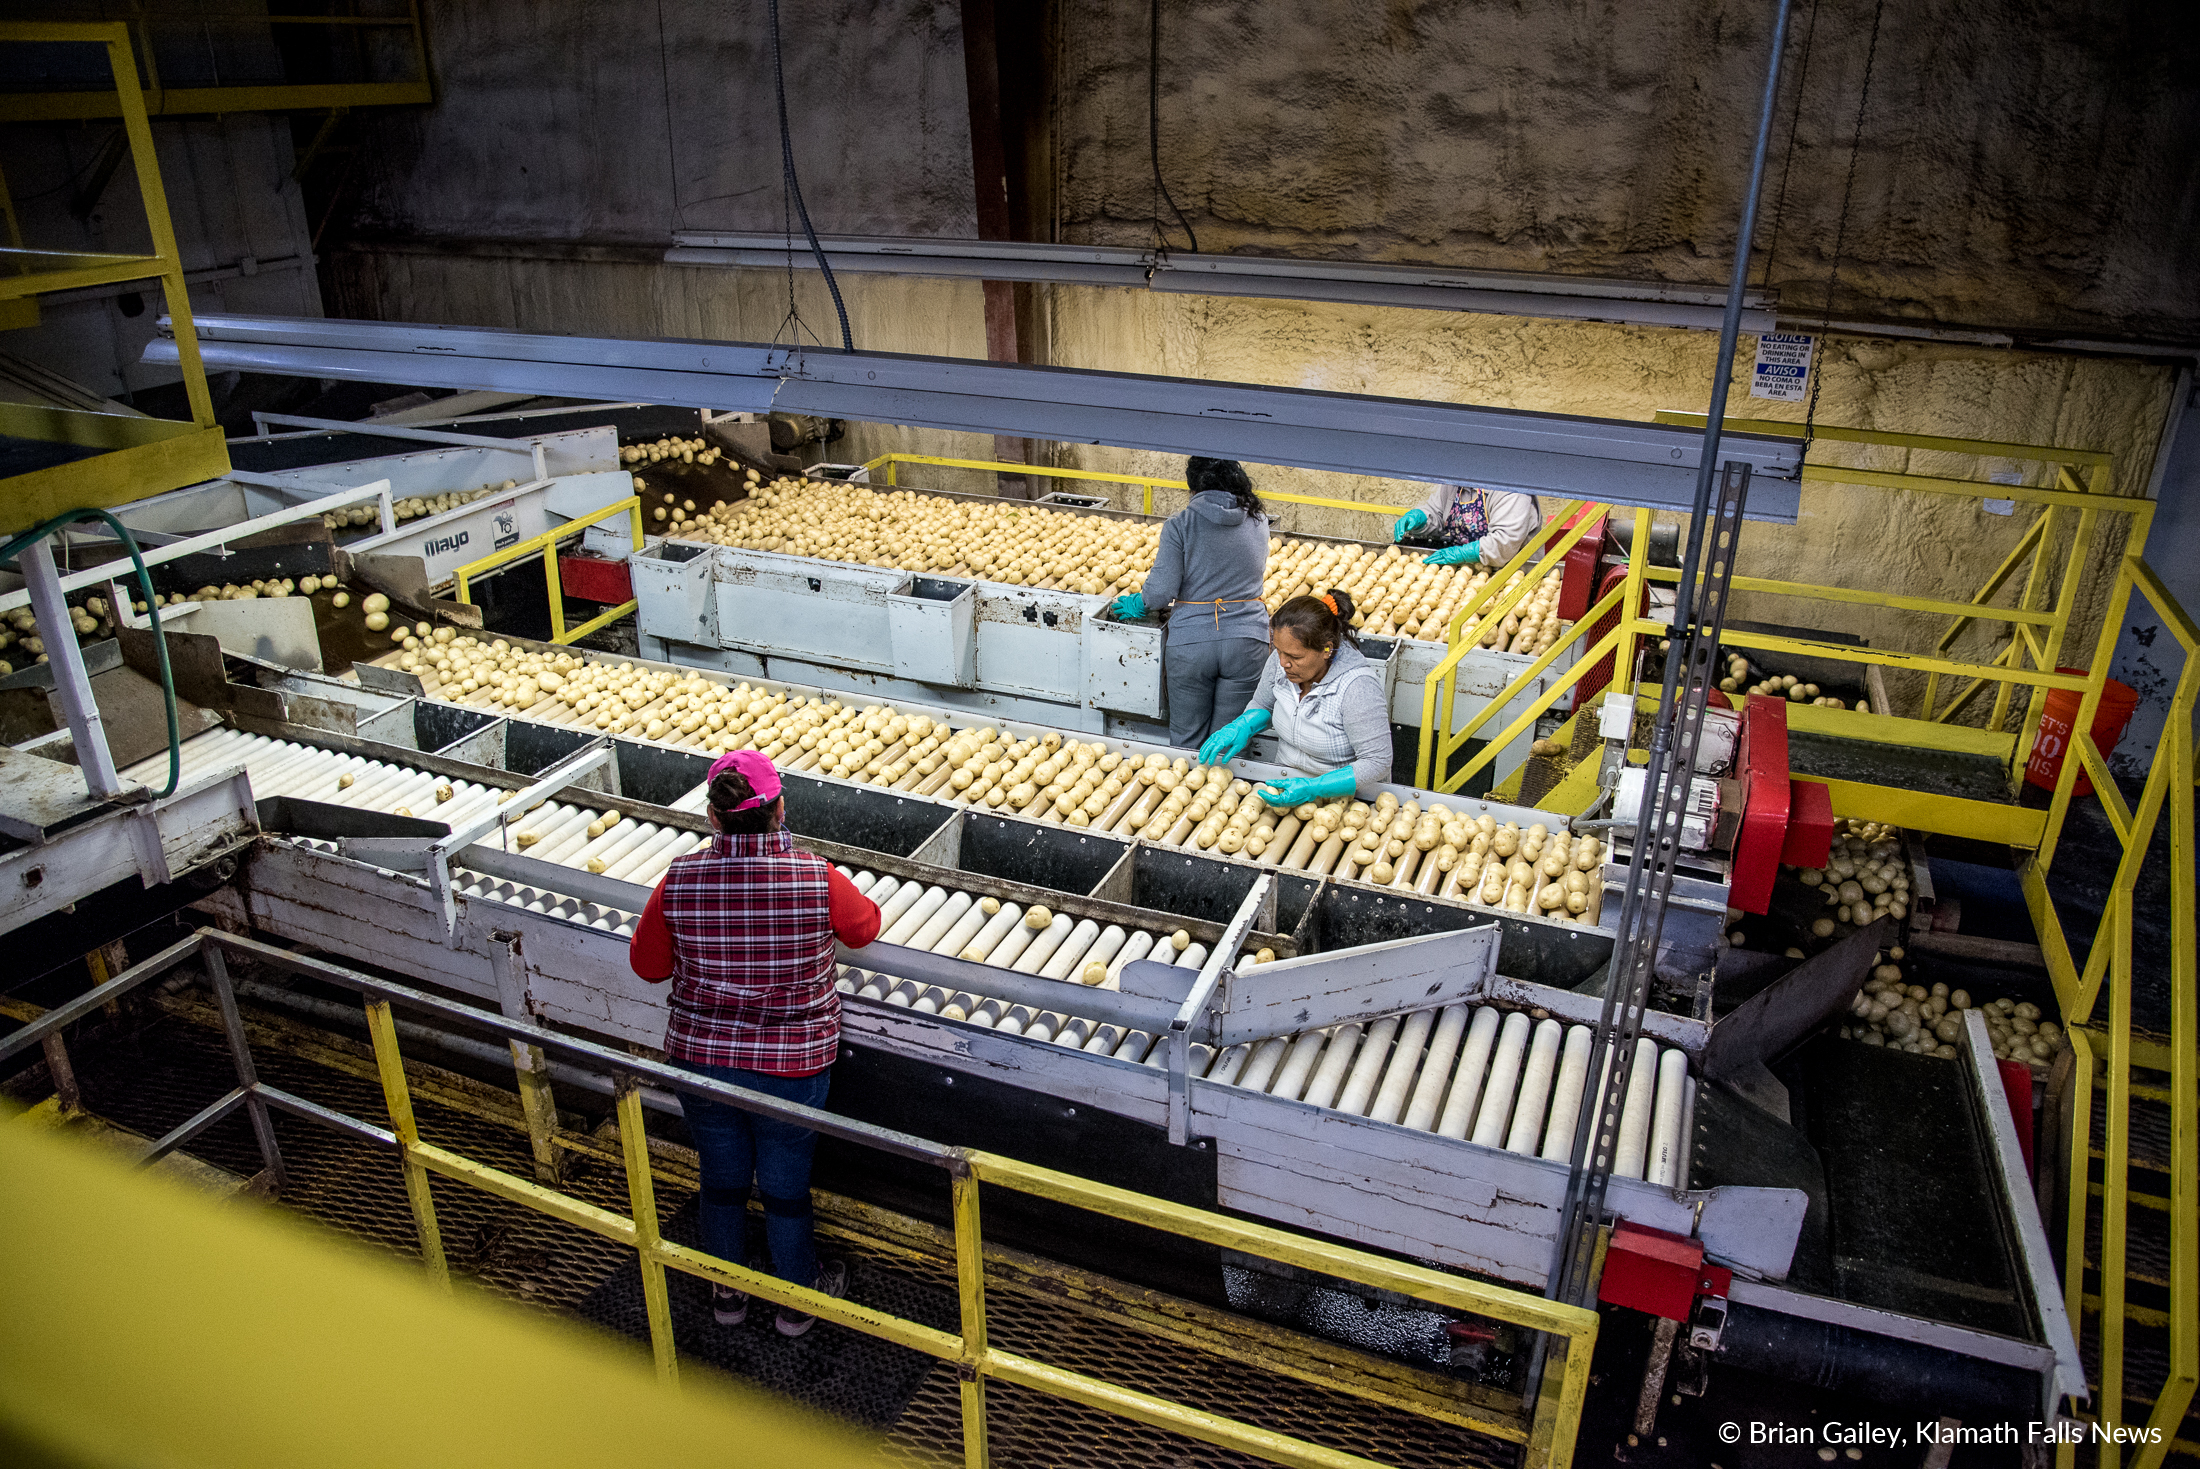 A wide view of the sorting tables at Gold Dust Potatoes. These little spuds will eventually be chipped,fried and bagged into Lays Potato Chips. (Brian Gailey)